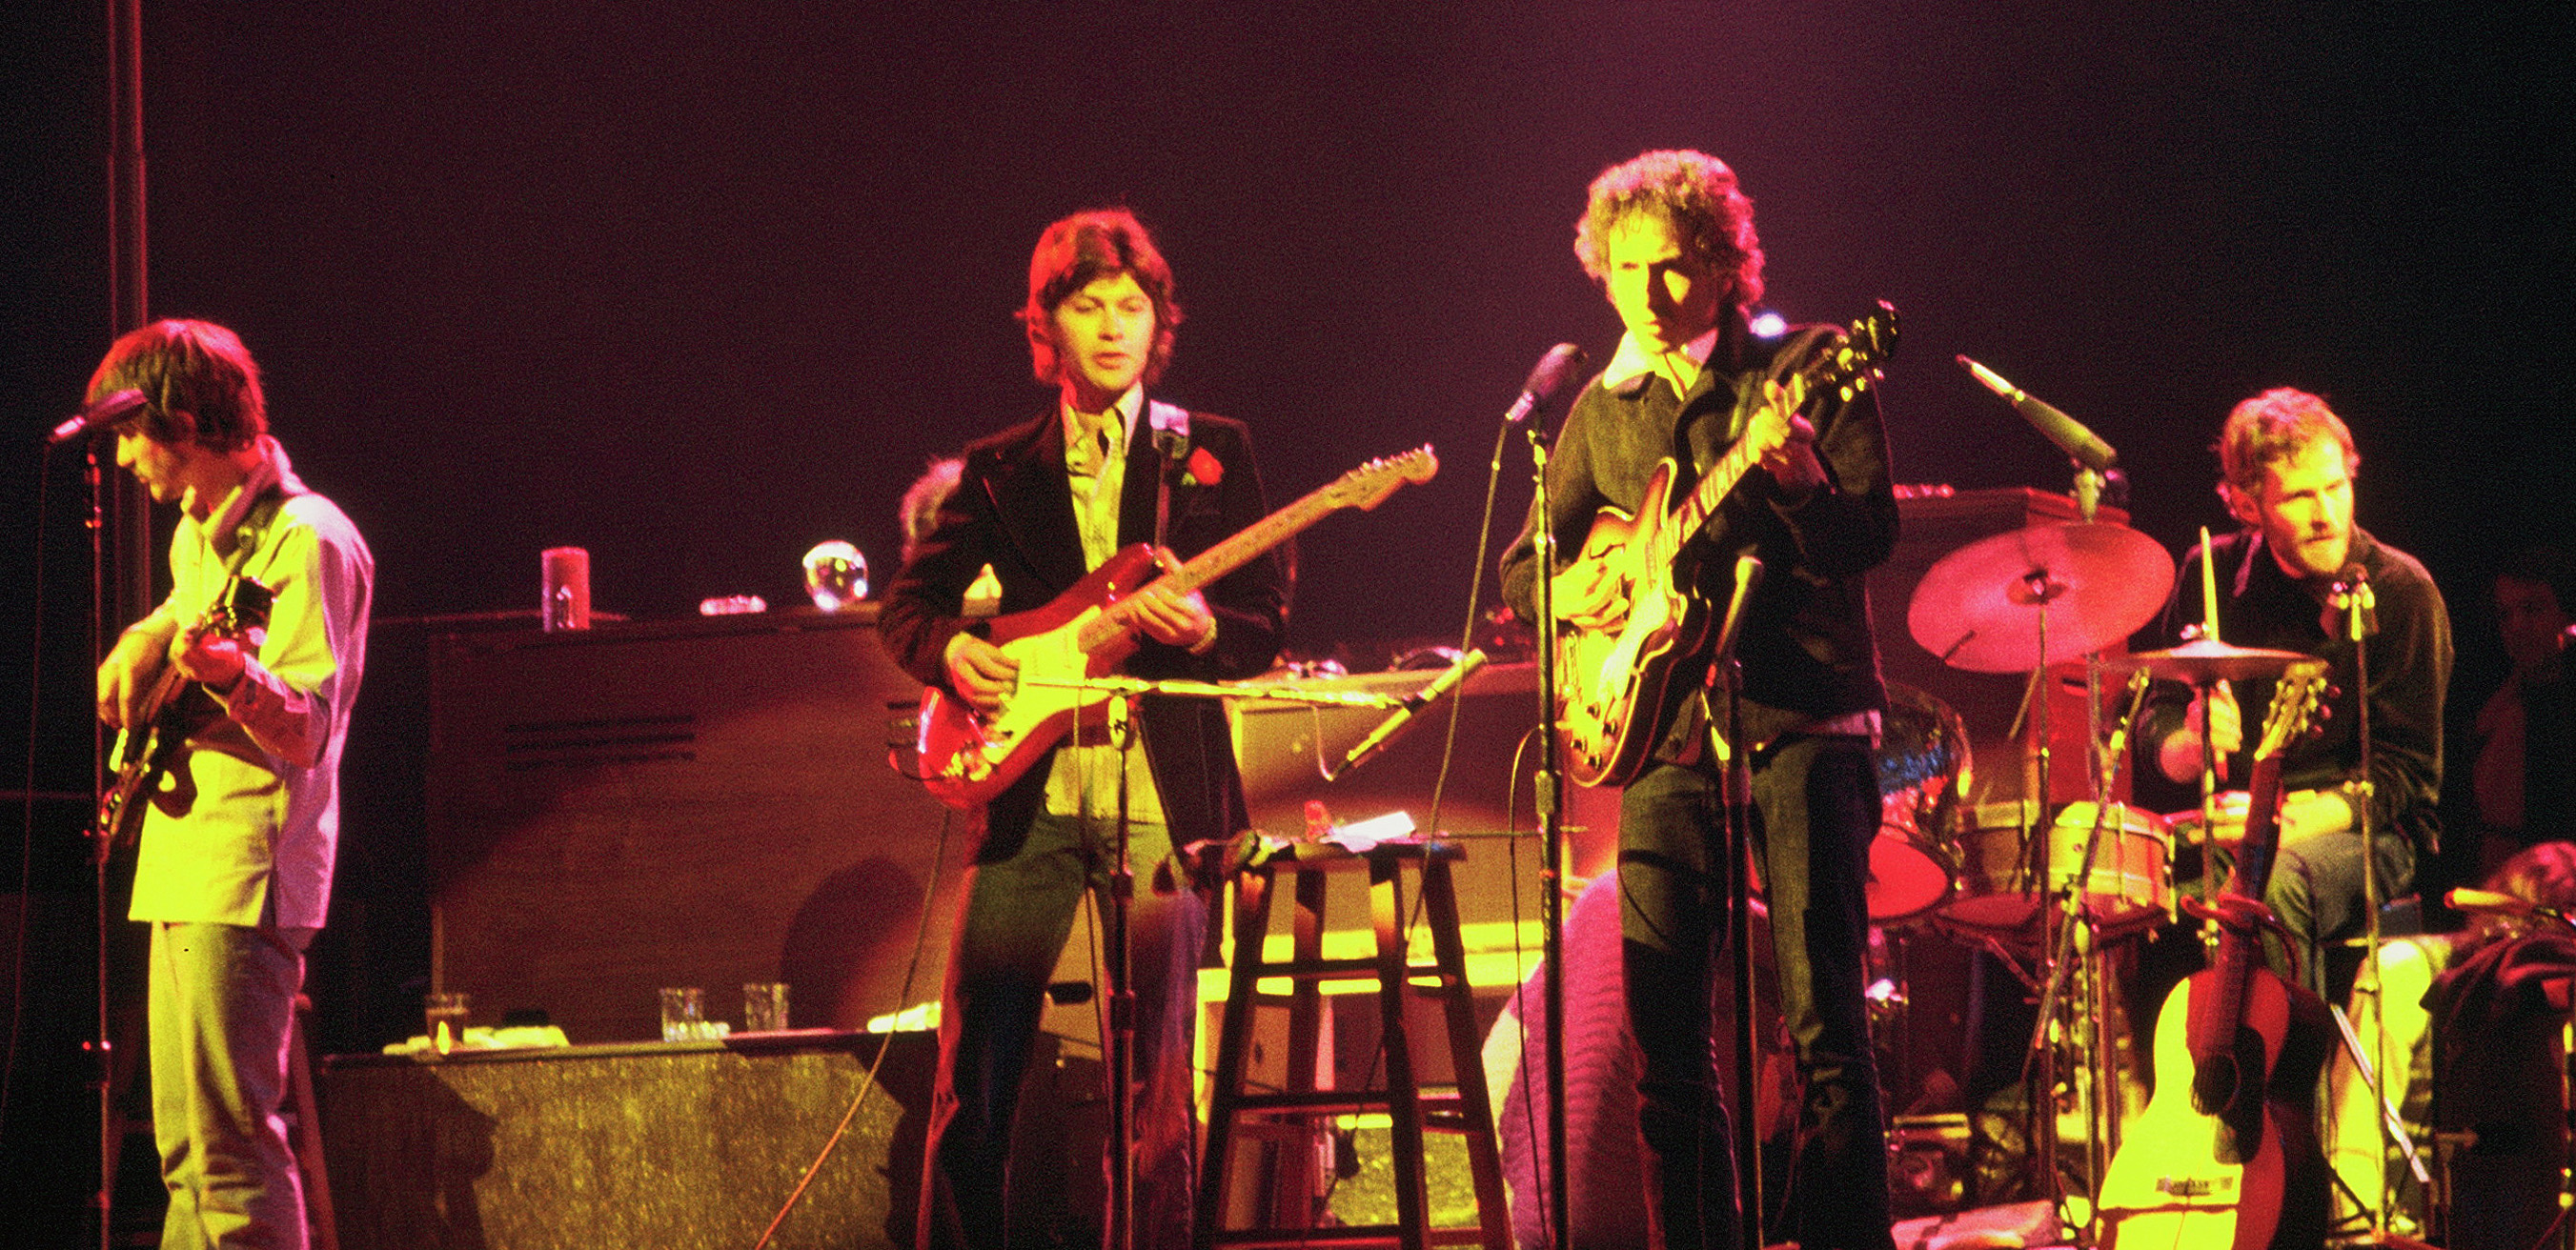 Dylan together with three musicians from The Band onstage. Dylan is third from left, wearing a black jacket and pants. He is singing and playing an electric guitar.